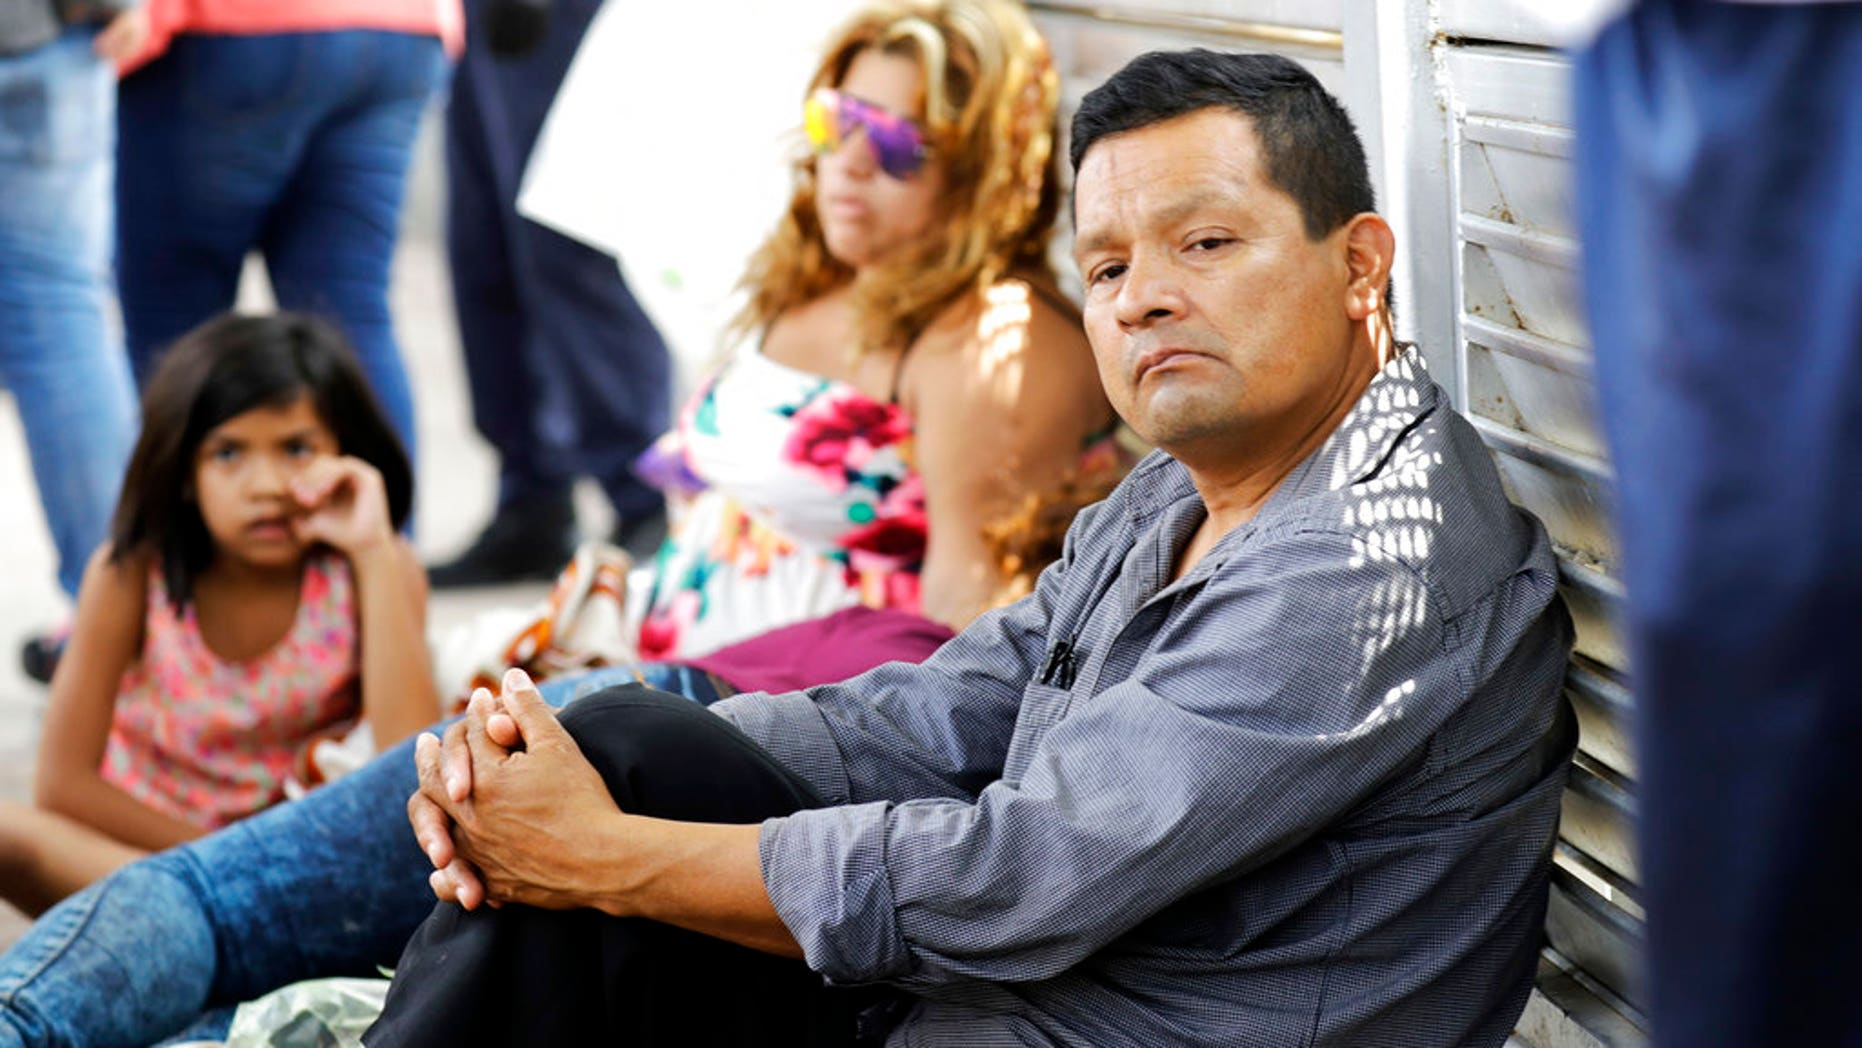 Ruben Prado, right, an immigrant from Guatemala seeking asylum in the United States, waits on the Gateway International Bridge along with a family from Honduras, in Matamoros, Mexico on Sunday, June 24, 2018. Prado arrived at the bridge today after traveling for 20 days. (AP Photo/David J. Phillip)